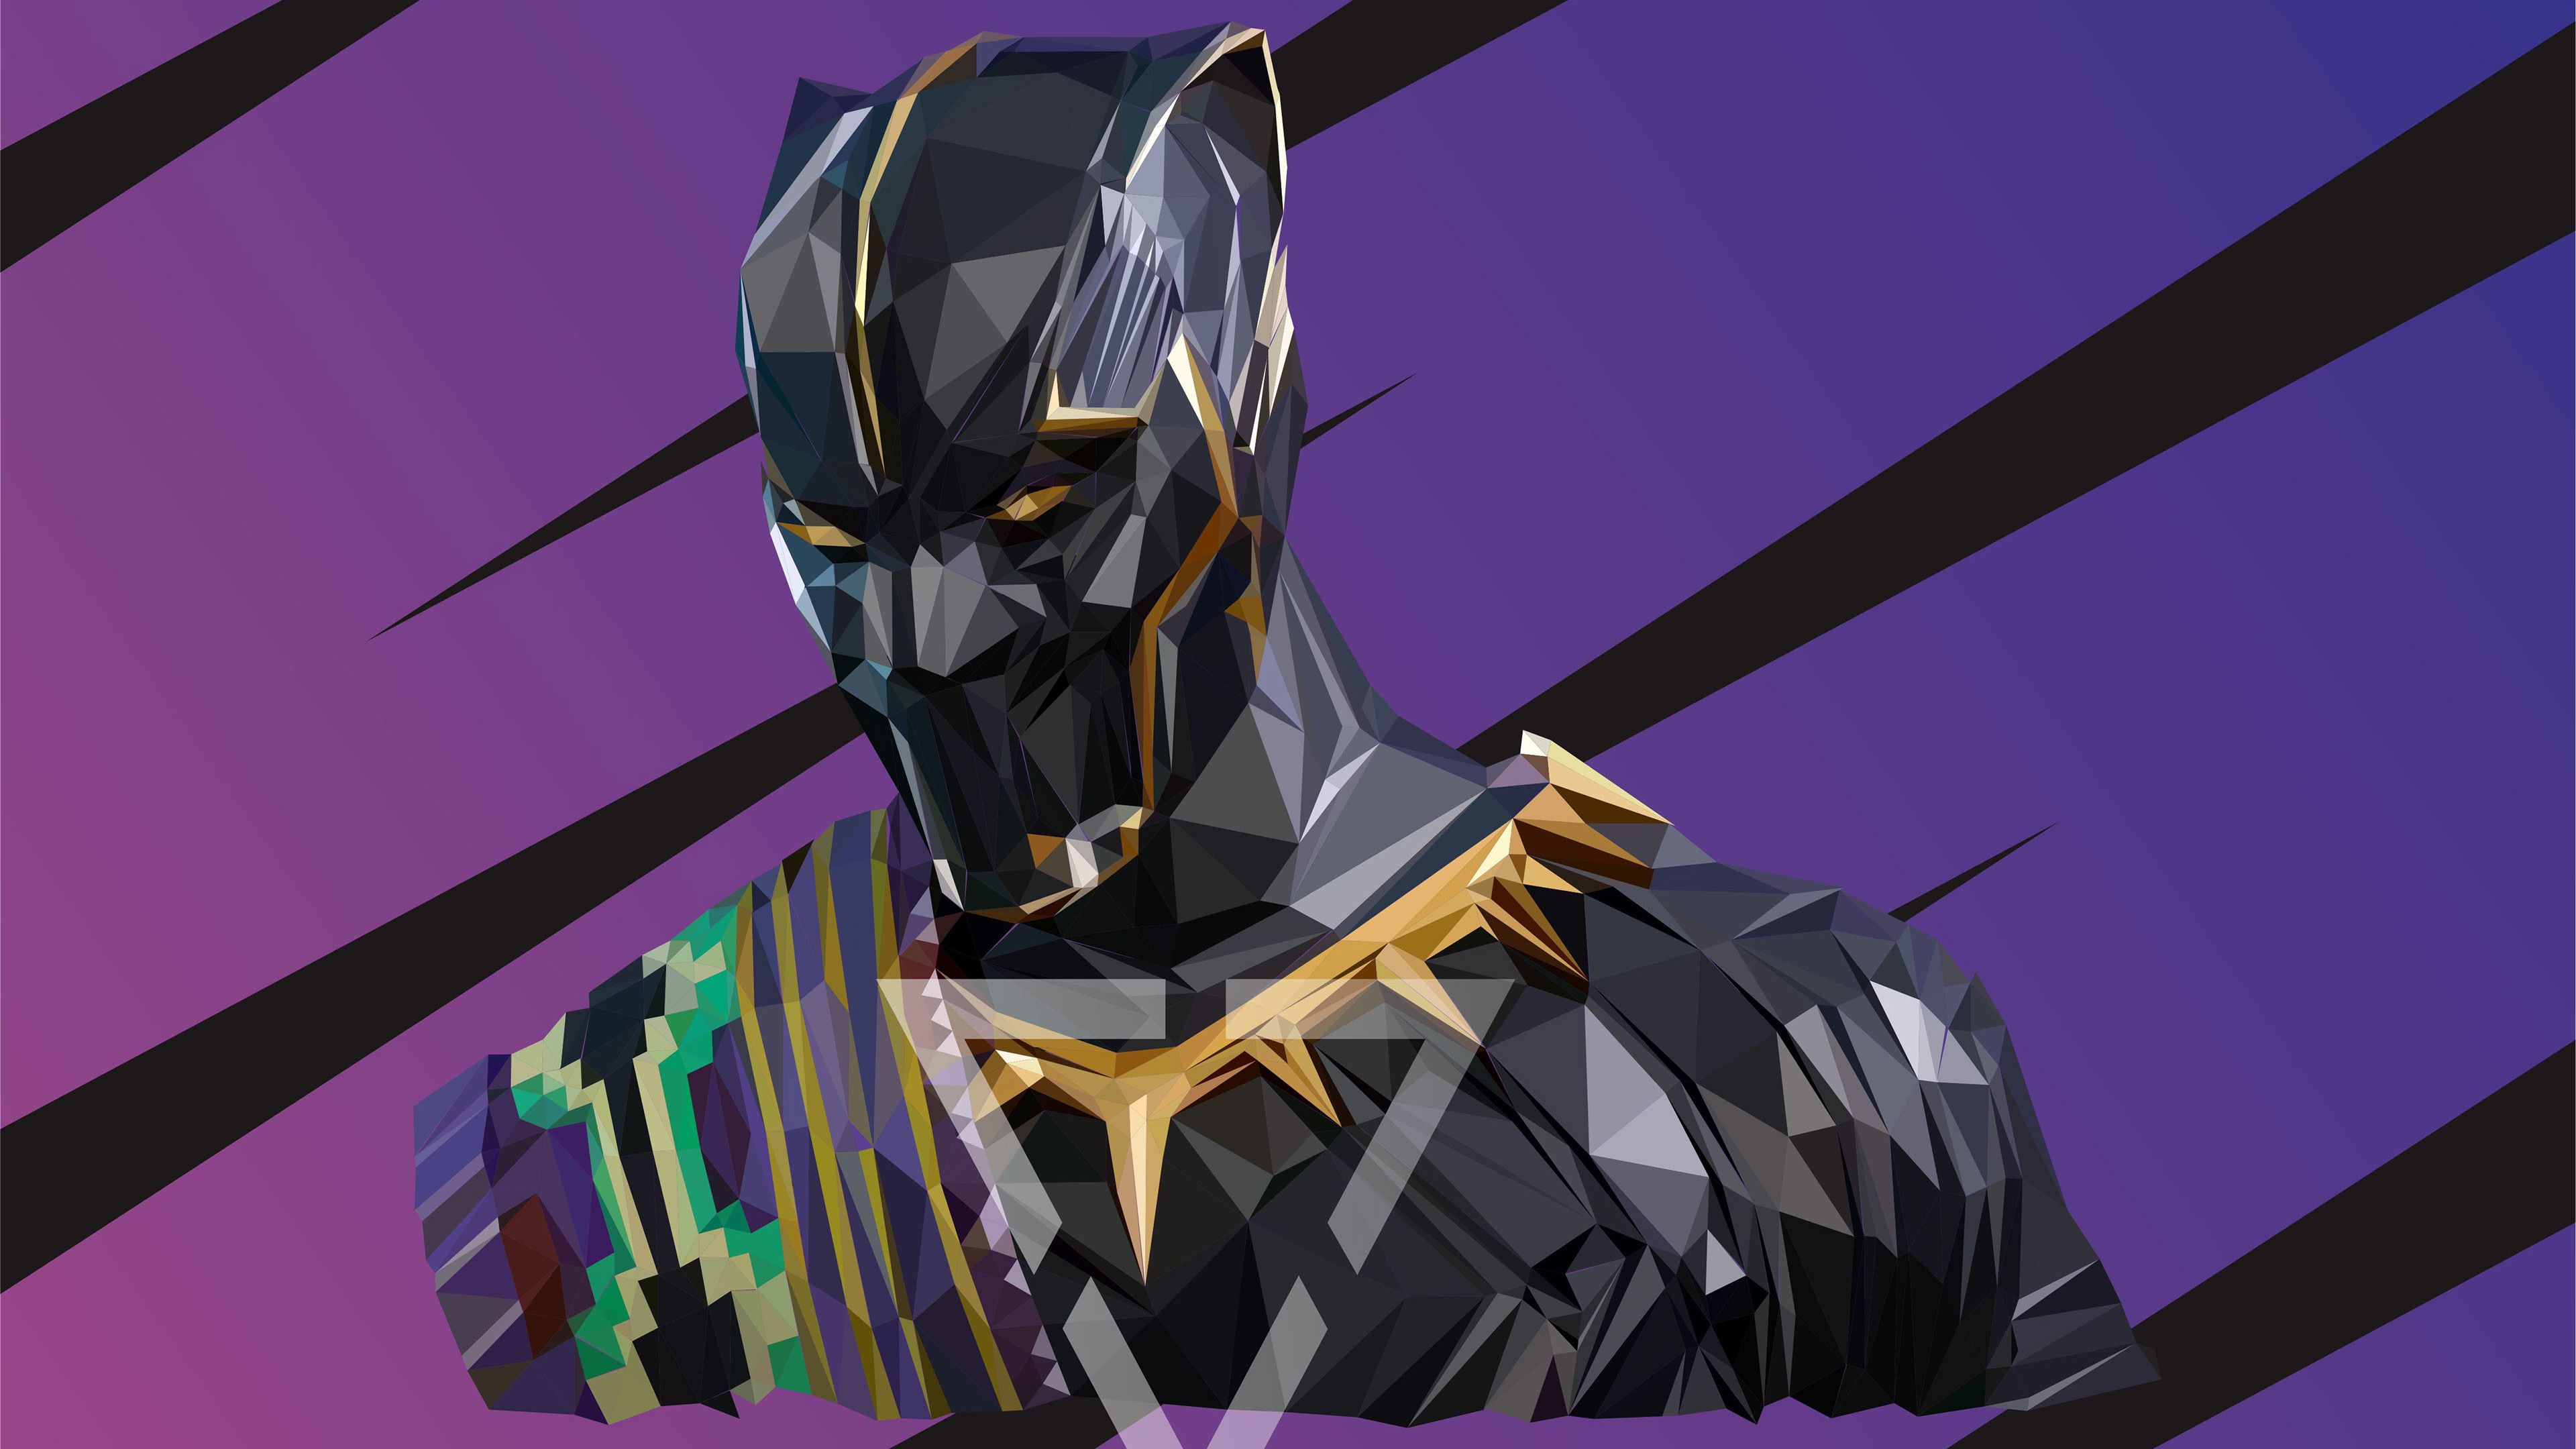 Black Panther T Chakka Lowpoly Art 4k Superheroes Wallpapers Hd Wallpapers Black Panther Wallpapers Behance Wallpape Low Poly Art Black Panther Hd Wallpaper